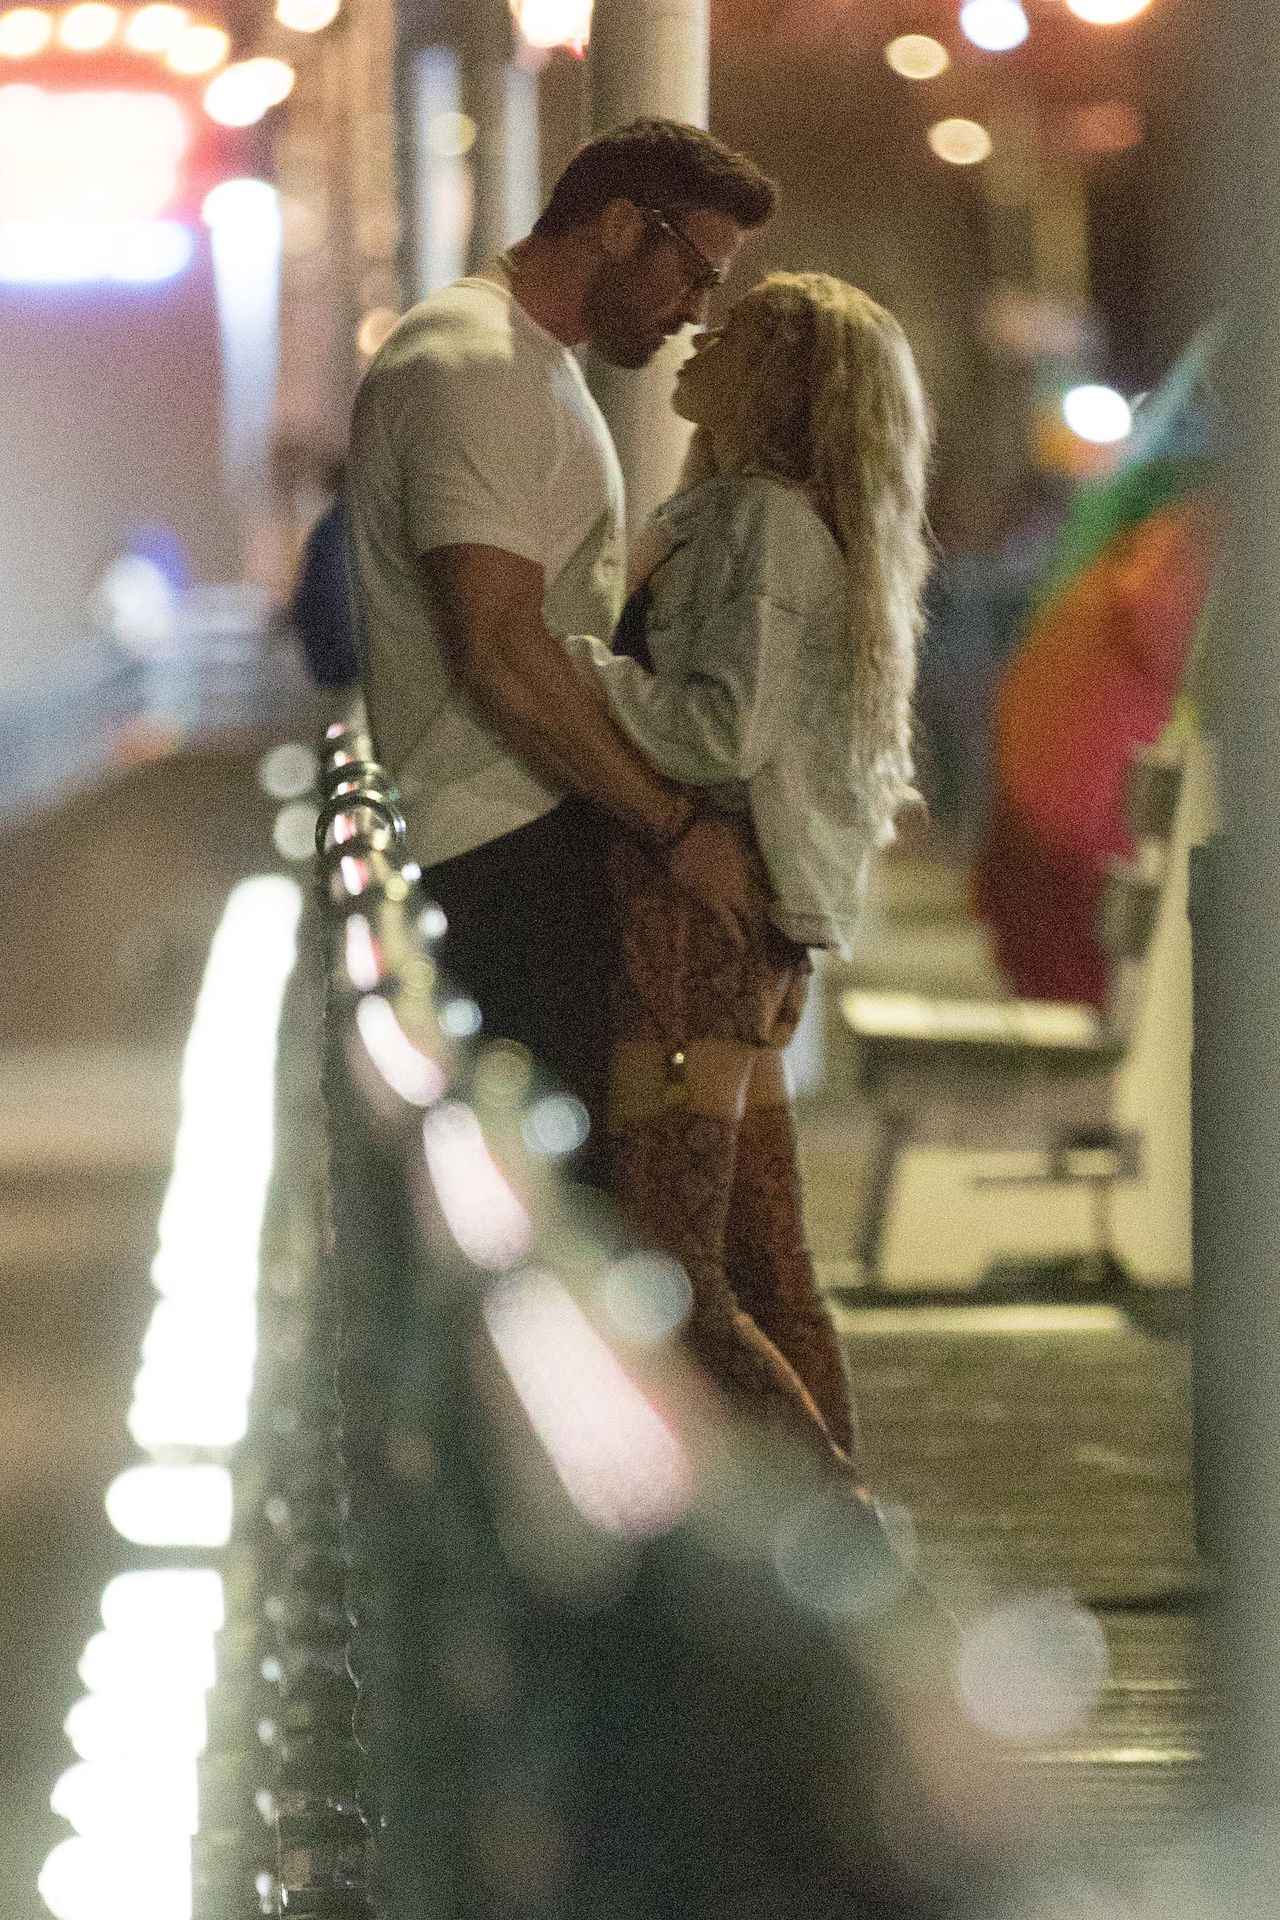 Chad Johnson & Annalise Mishler Are Seen On A Low Key Date At The Santa Monica Pier 0003